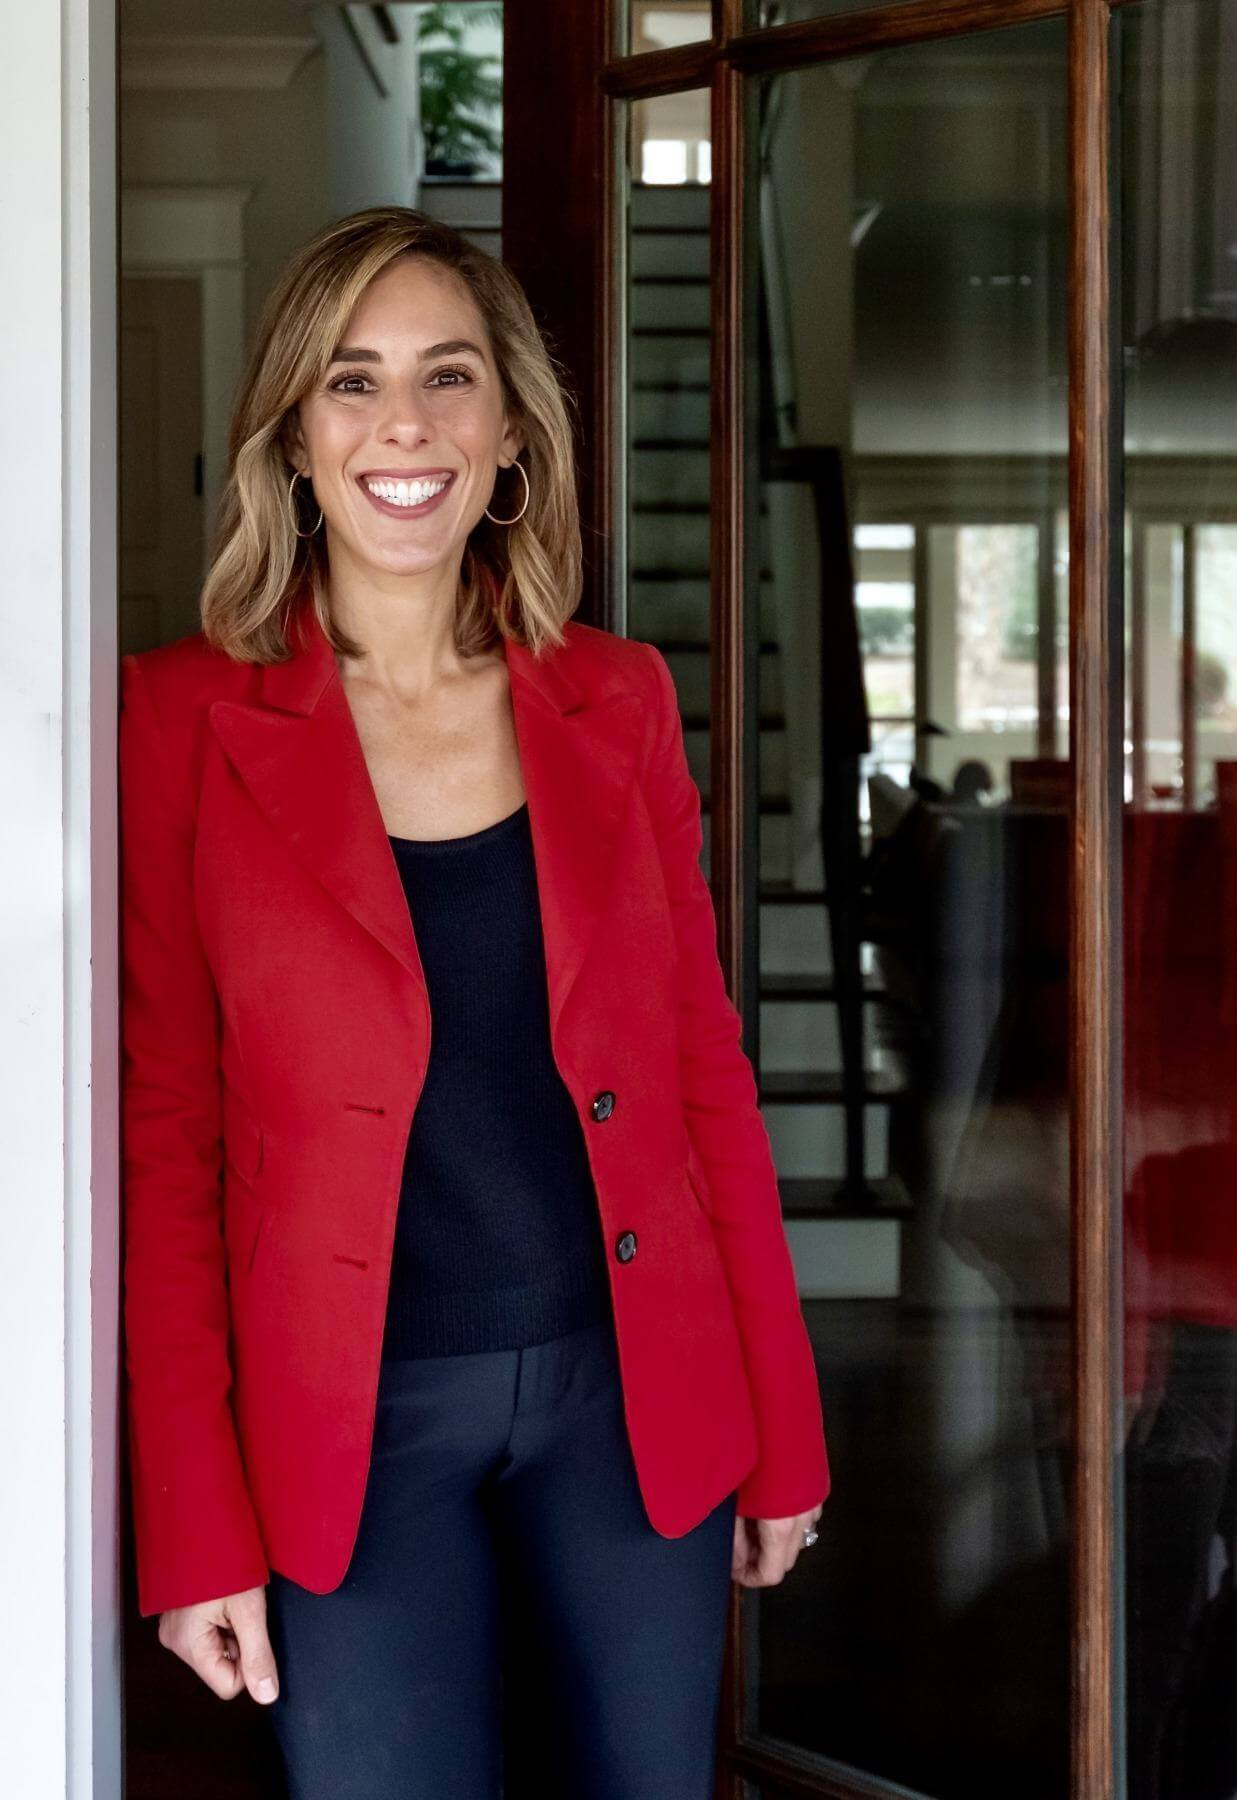 CEO and owner of Zeitlin Sotheby's International Realty, Jessica Averbuch